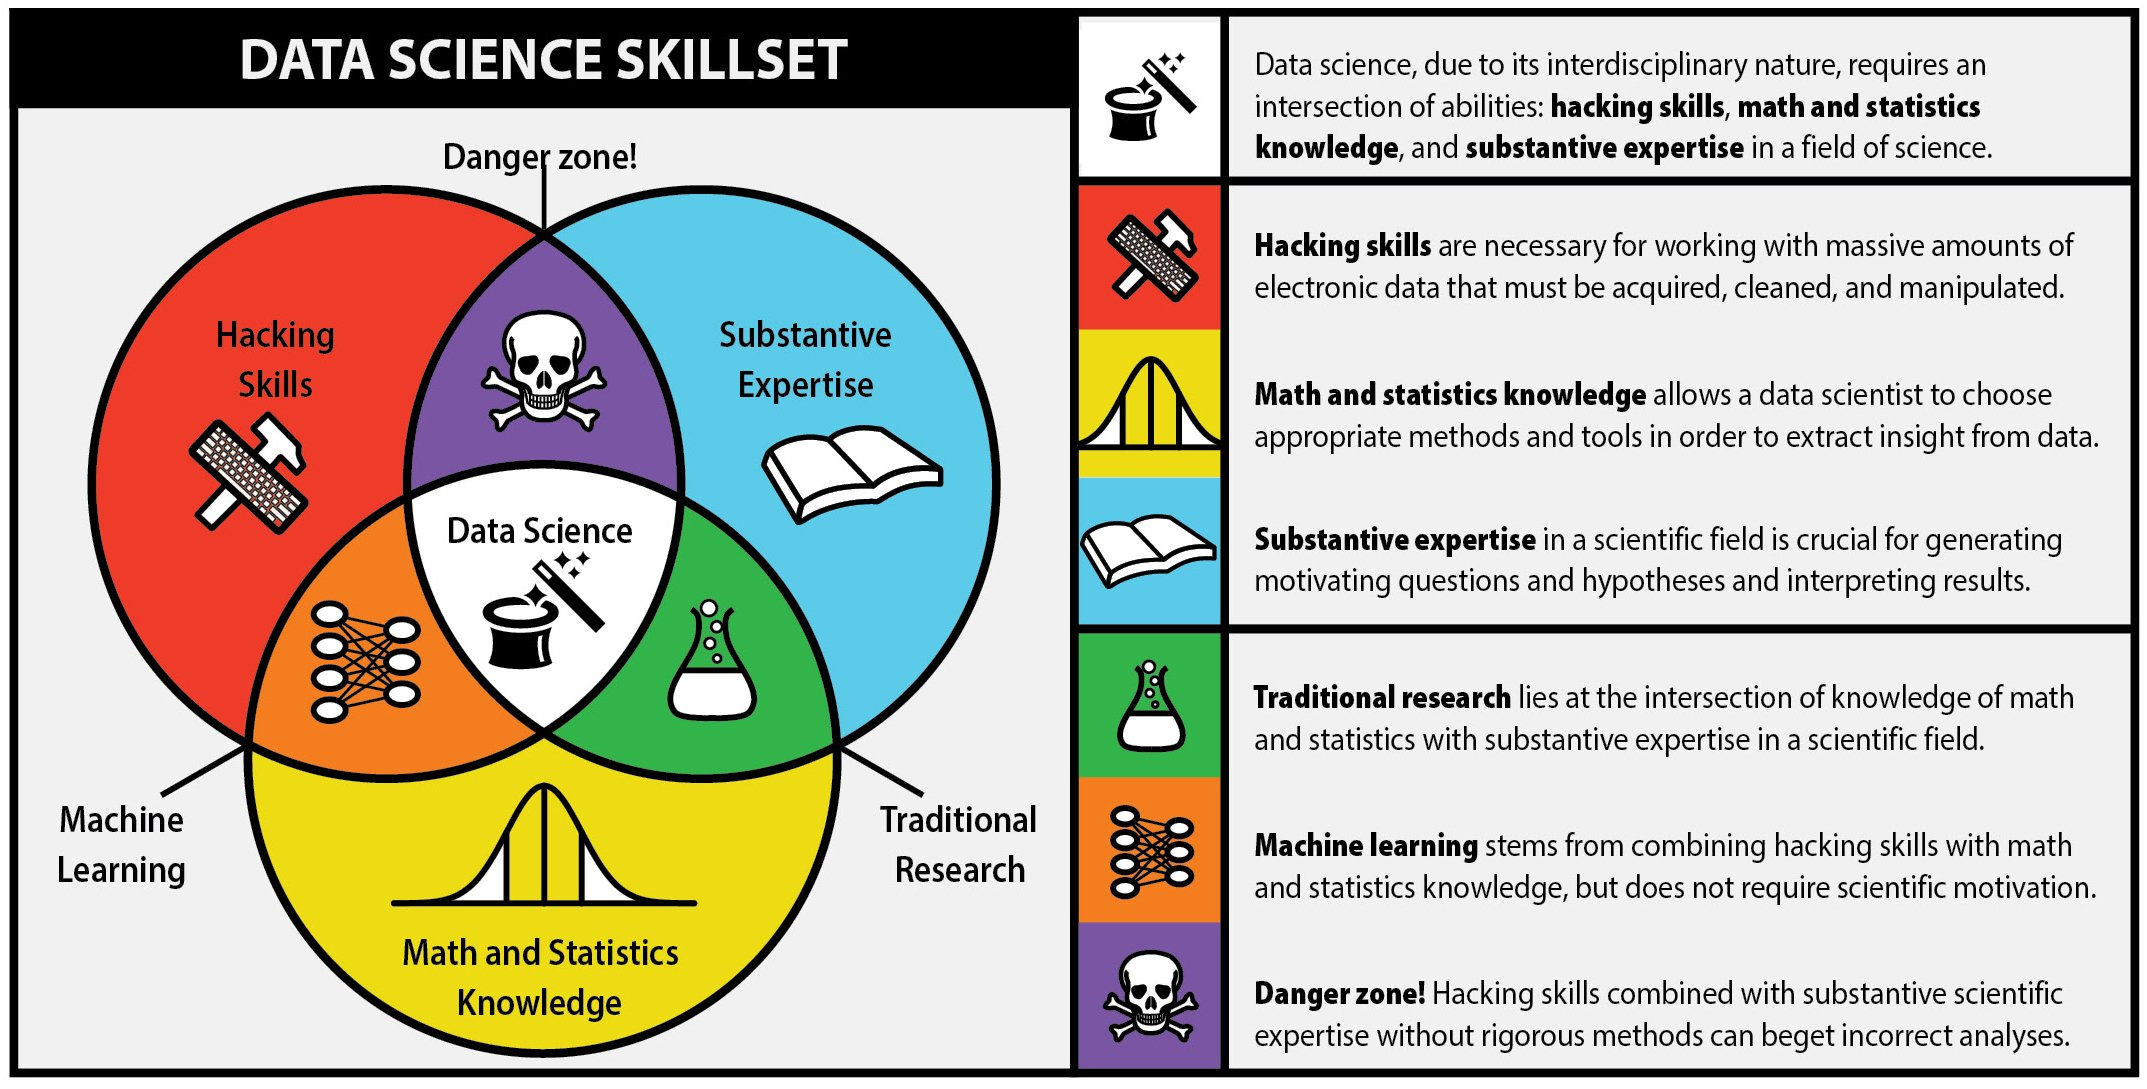 Data science skills